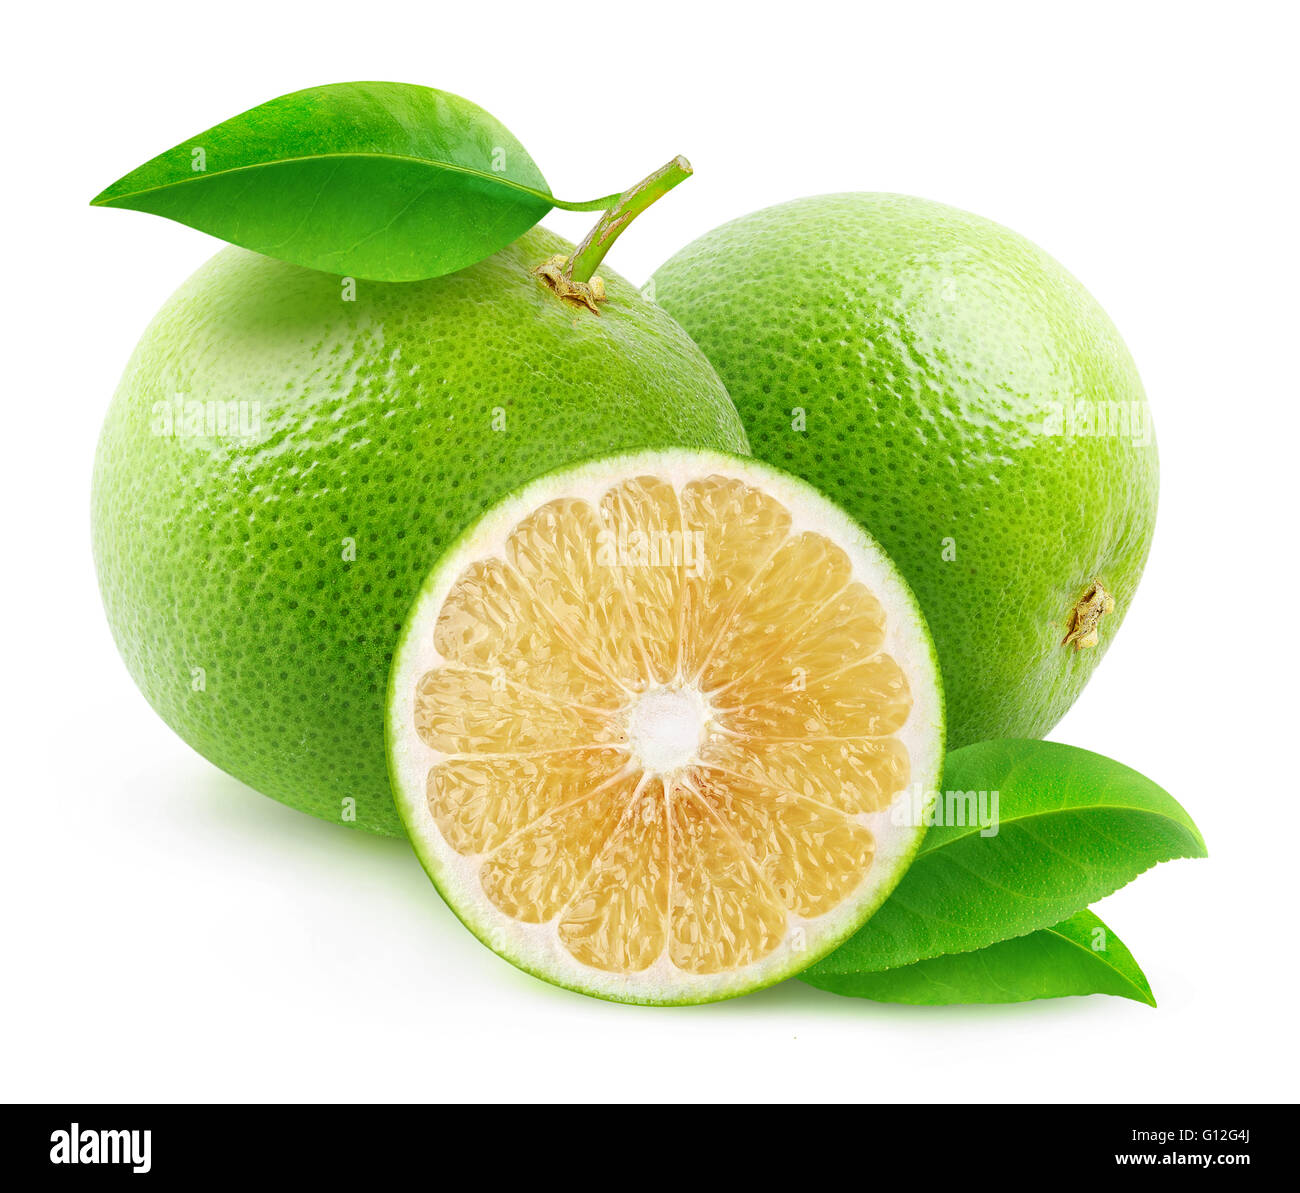 Isolated white grapefruits. Cut grapefruits isolated on white background with clipping path - Stock Image